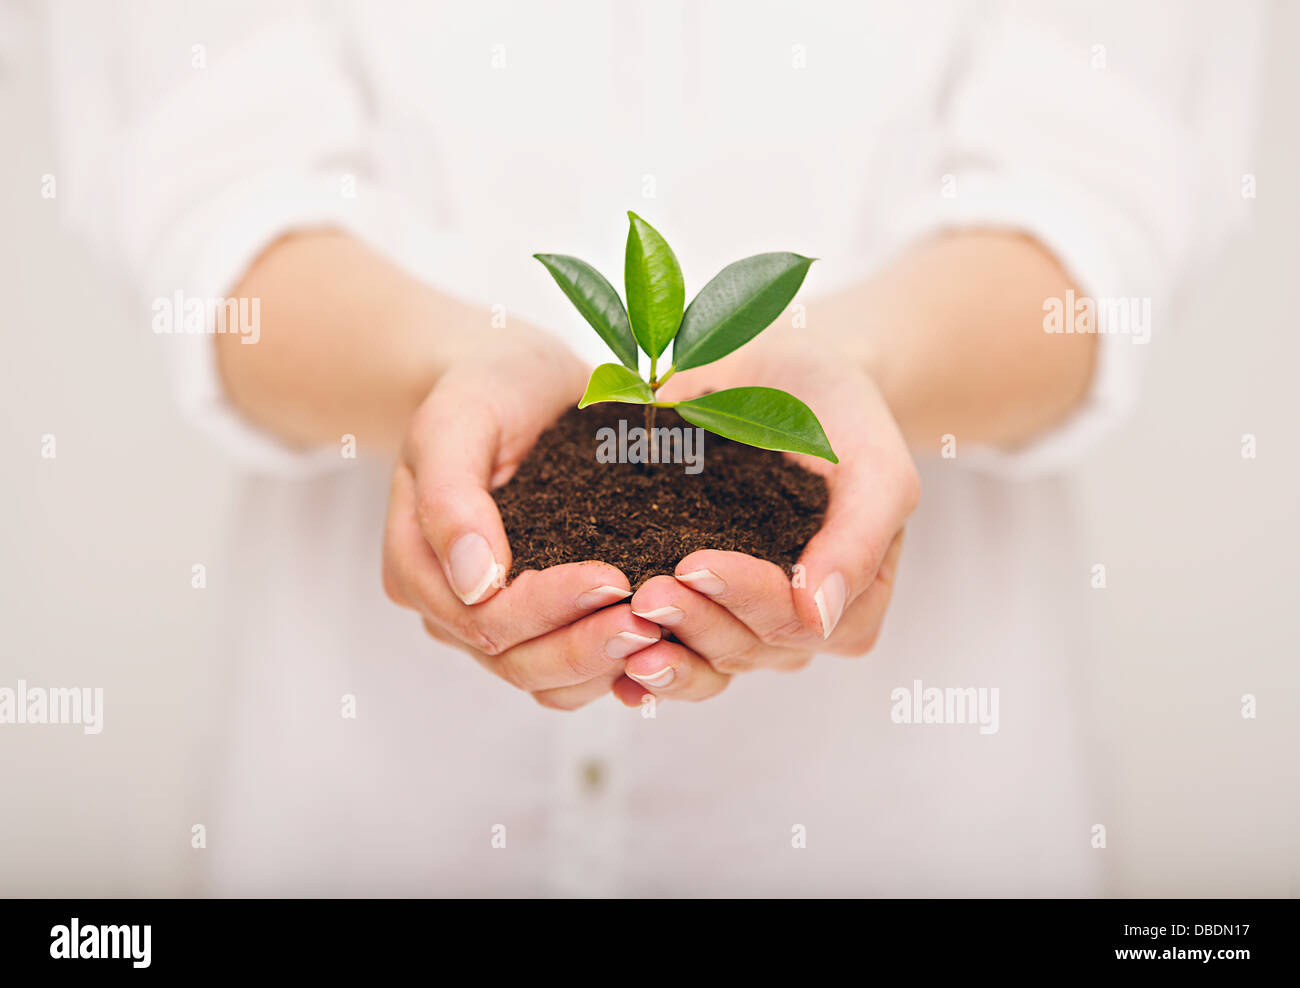 Woman's hand holding young plant, ecology concept - Stock Image